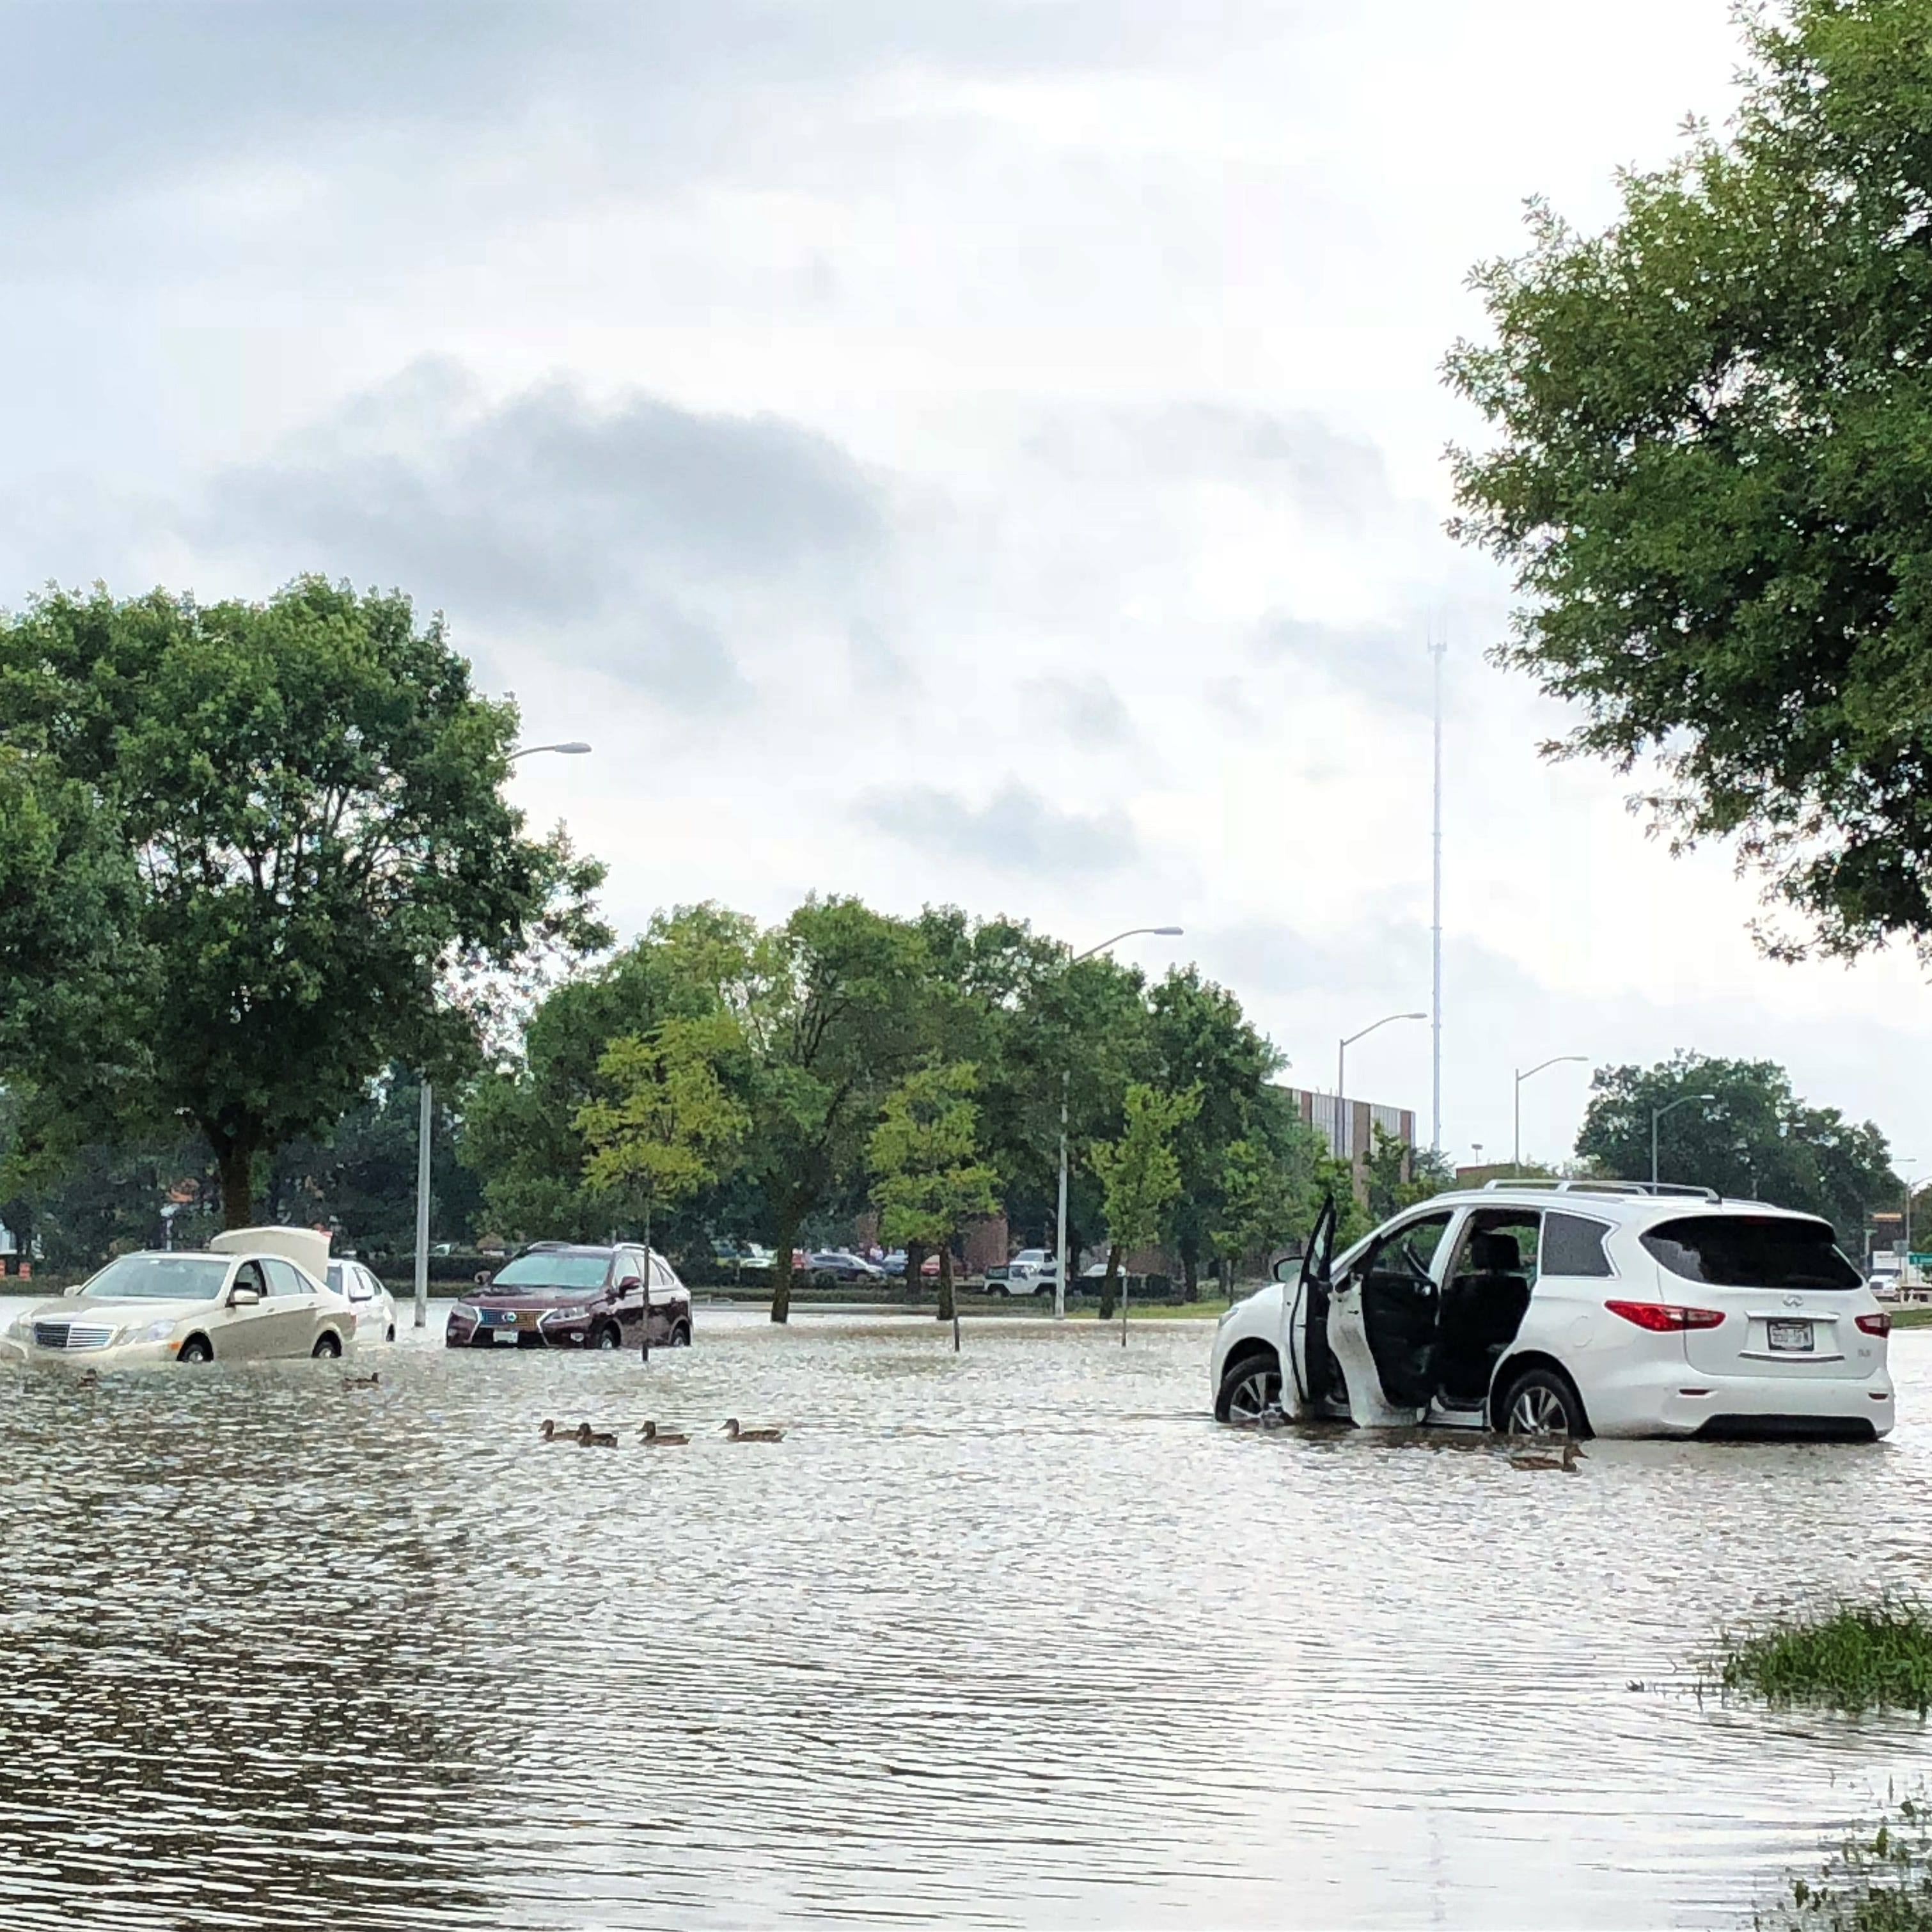 Near-record rain swamps Dane County, Madison, killing a motorist; widespread flooding reported